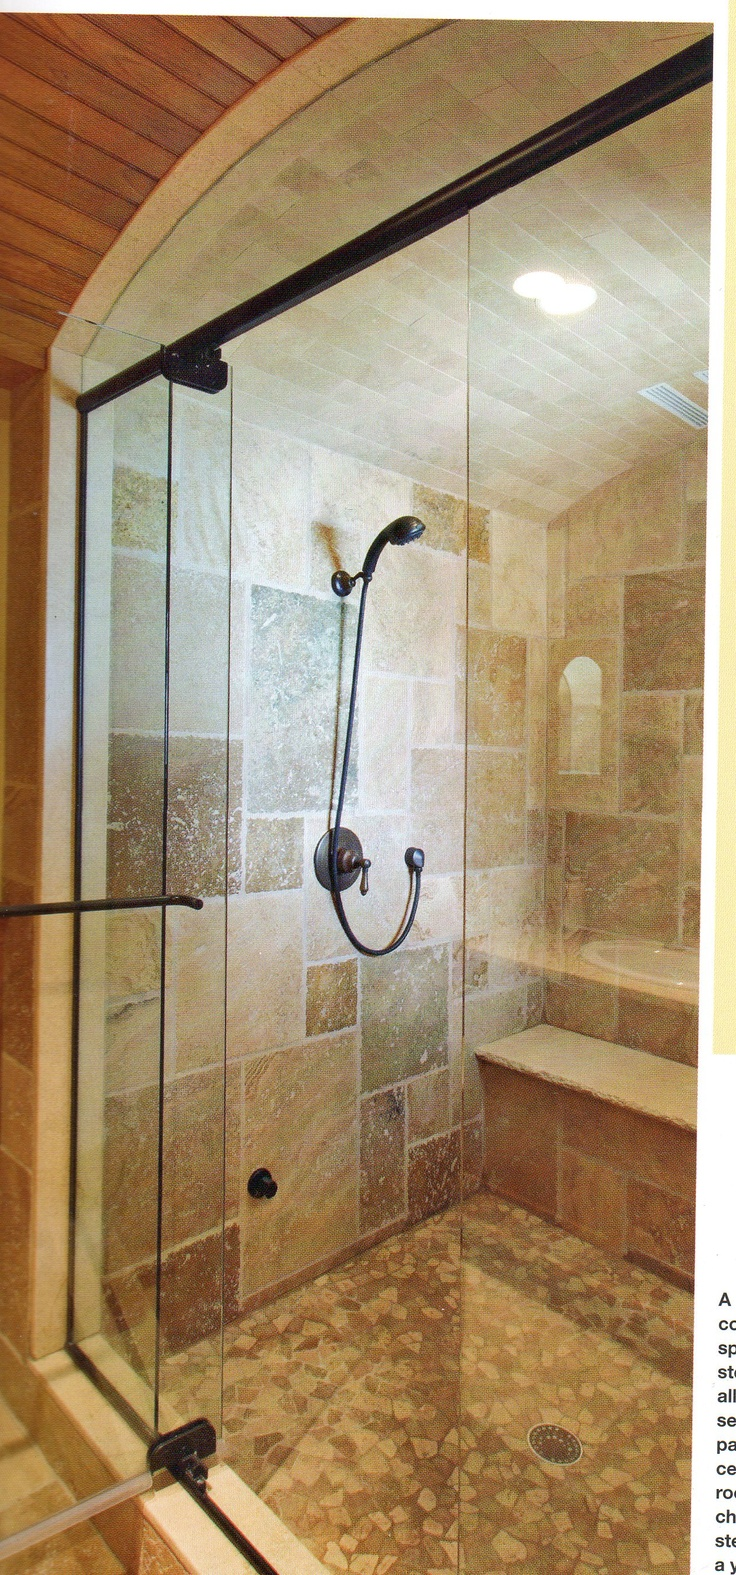 173 best steam bath generator images on pinterest steam bath arched steam shower